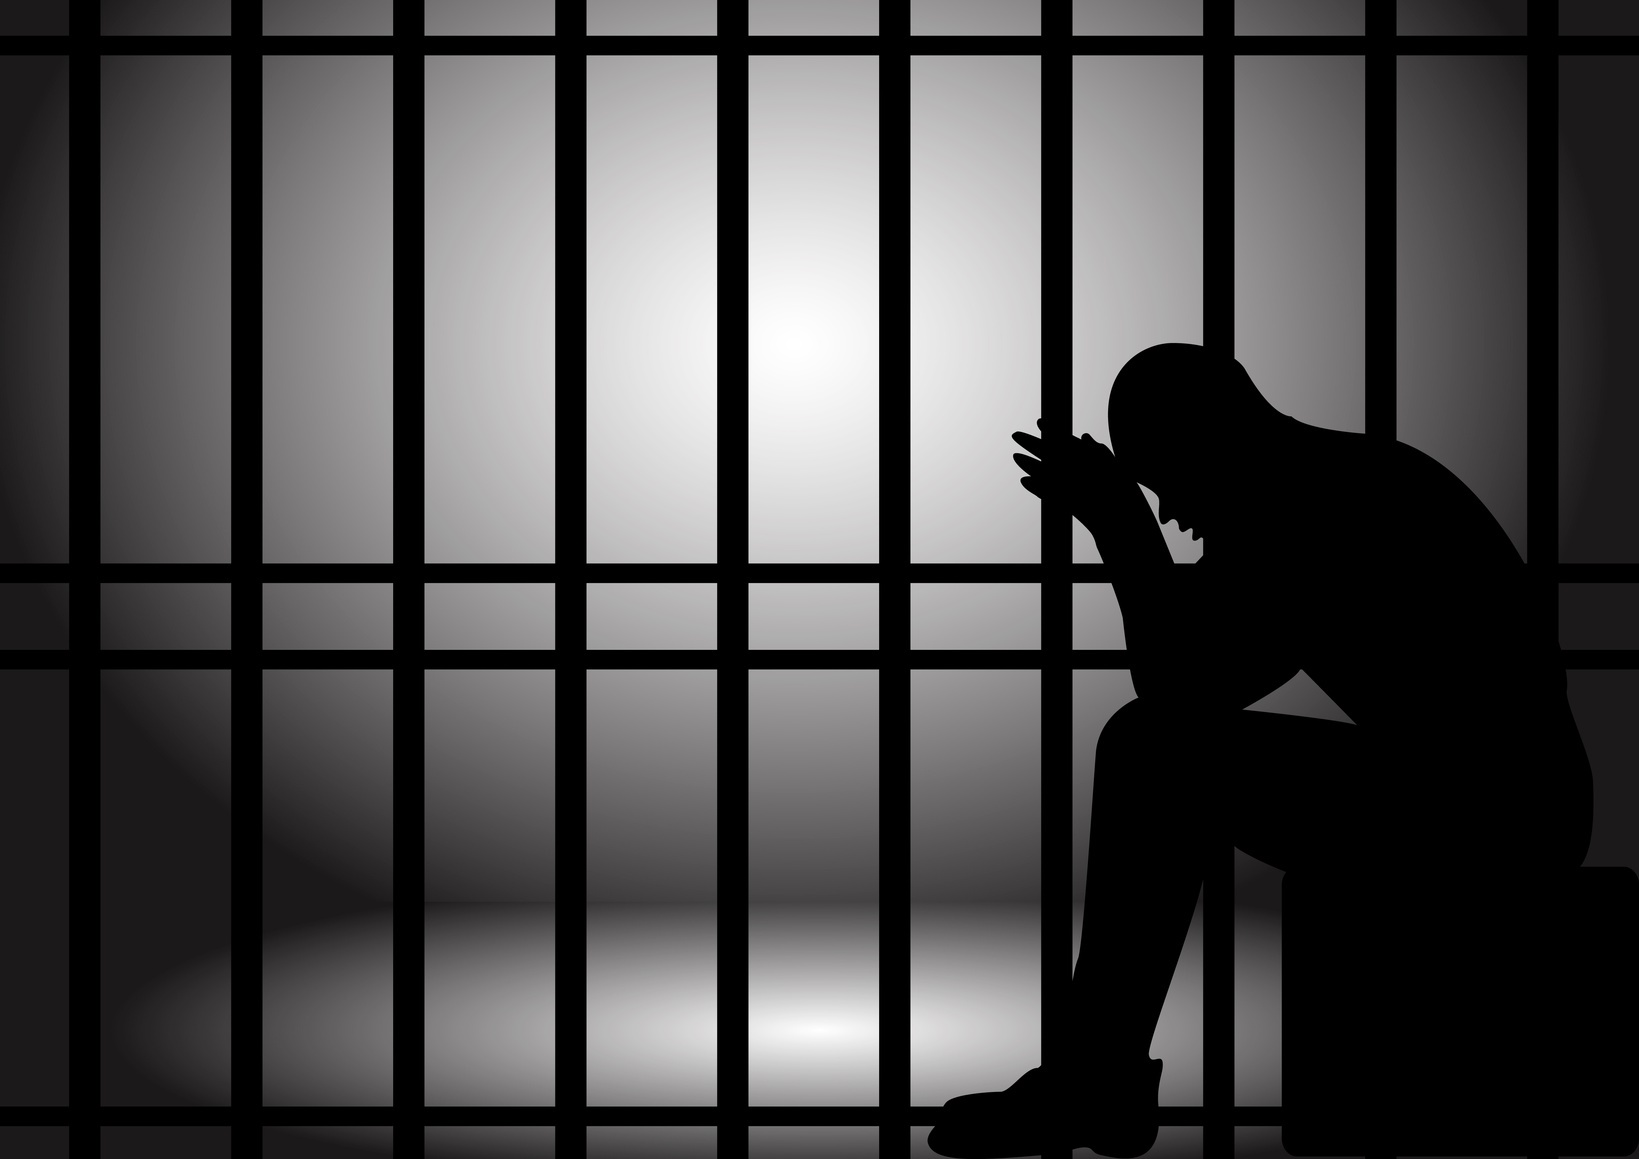 Bail/bond in Kenya: The need for  reforms has never been more urgent